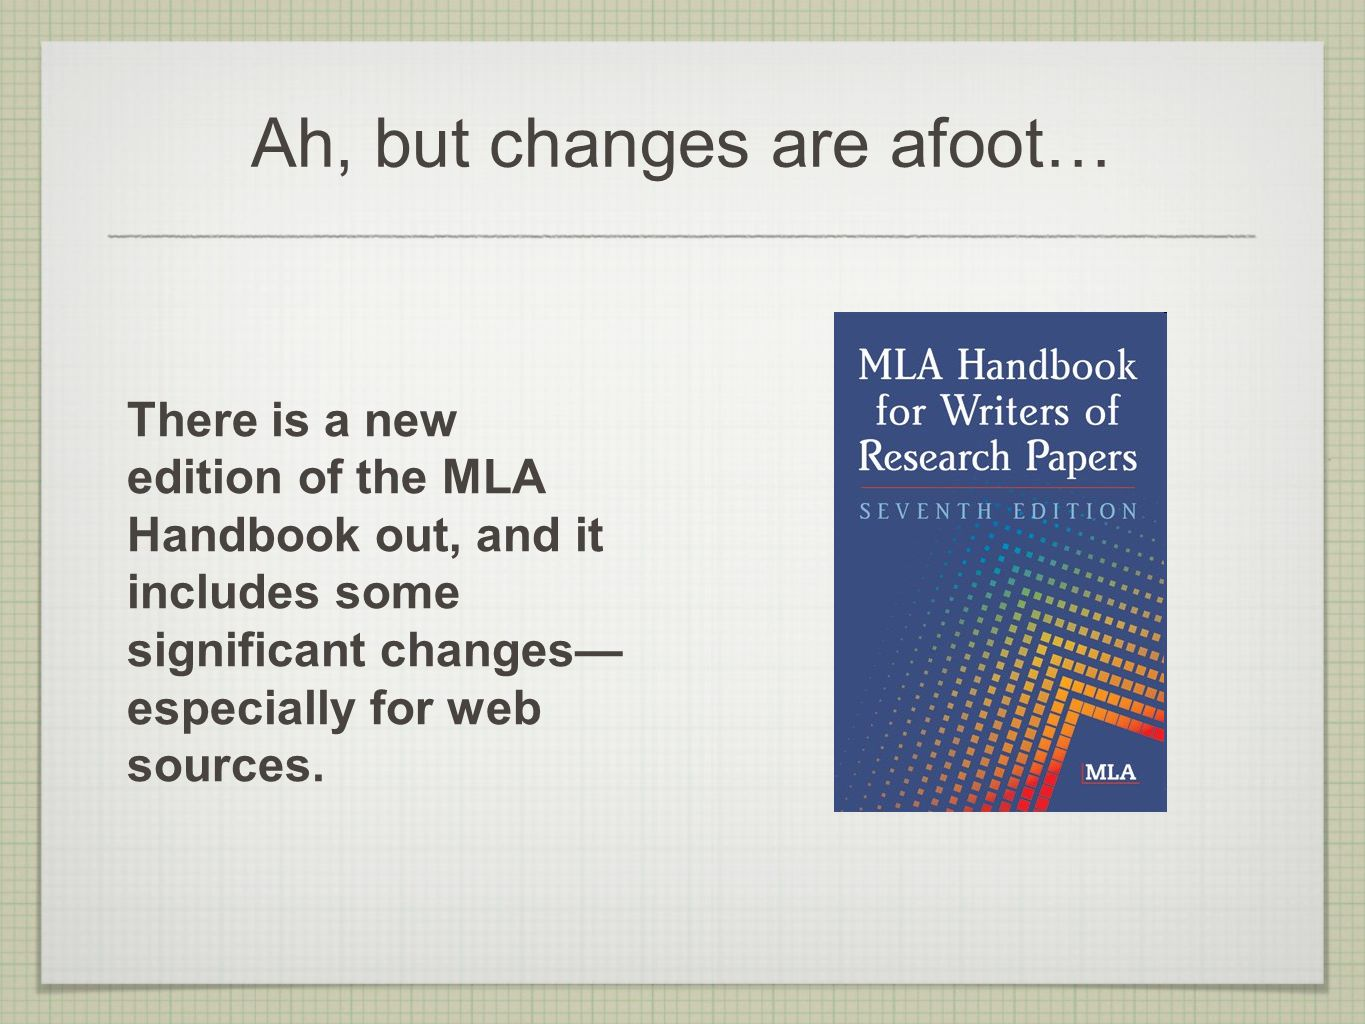 Ah, but changes are afoot… There is a new edition of the MLA Handbook out, and it includes some significant changes— especially for web sources.